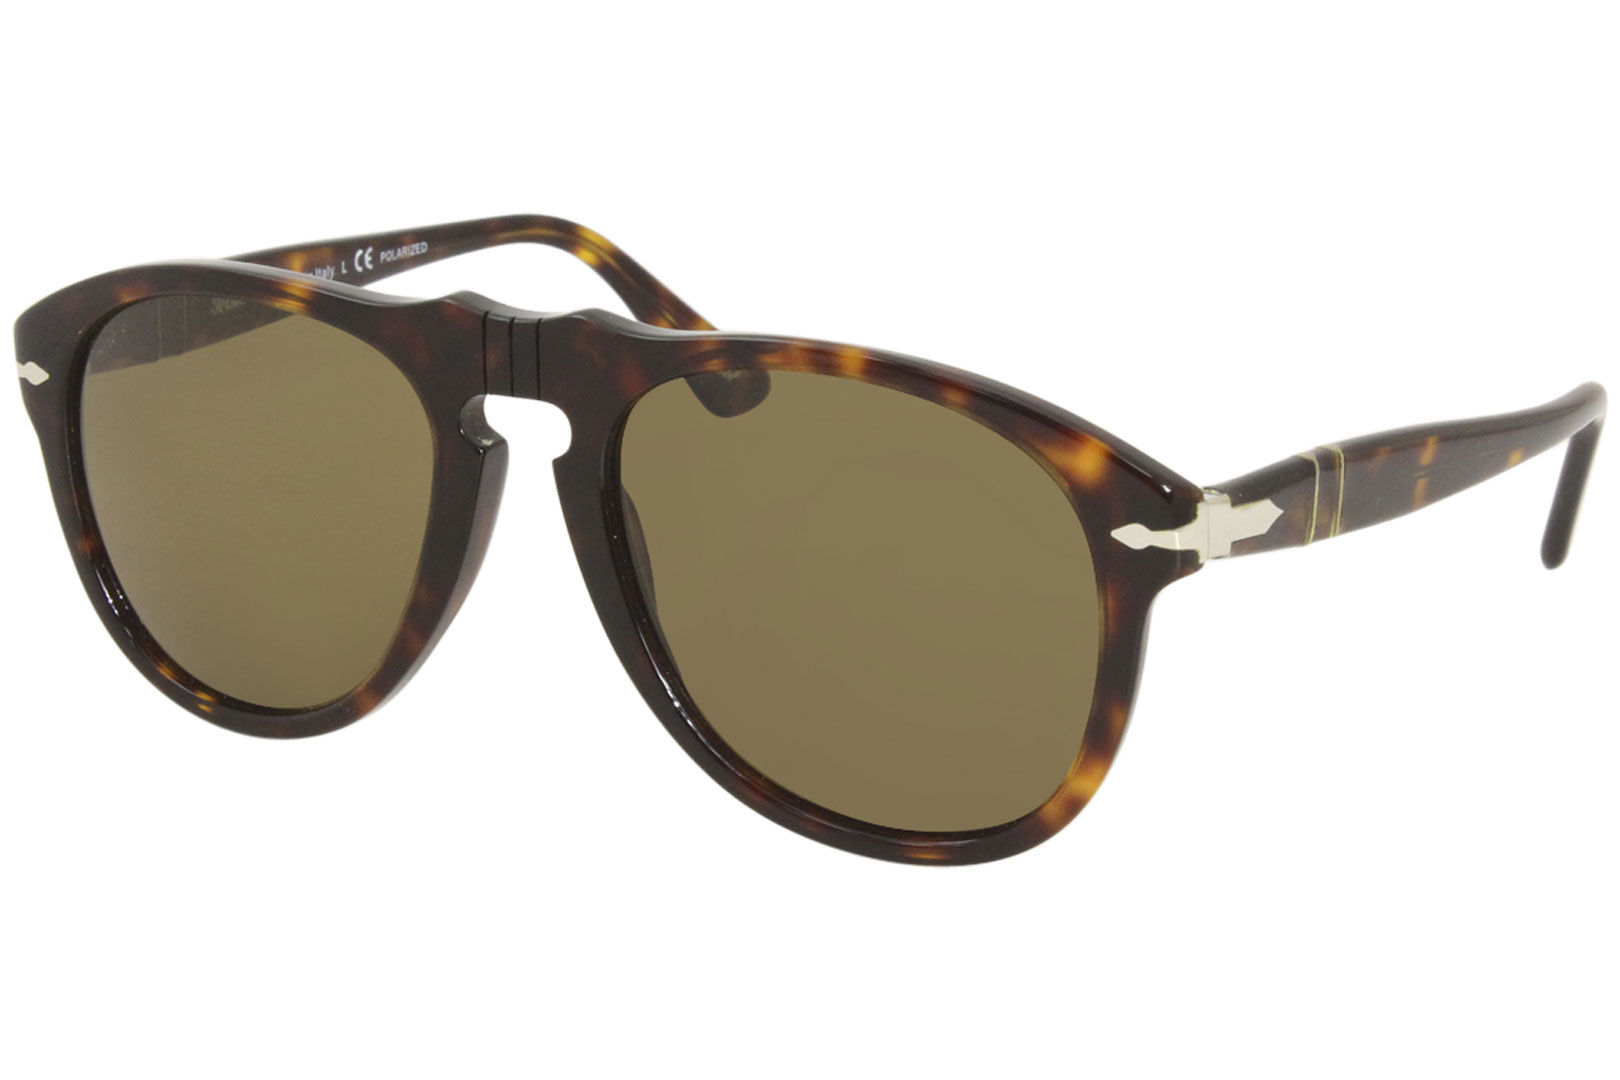 025ceabc6c9b3 Persol Men s PO649 PO 649 24 57 Havana Brown Pilot Polarized ...